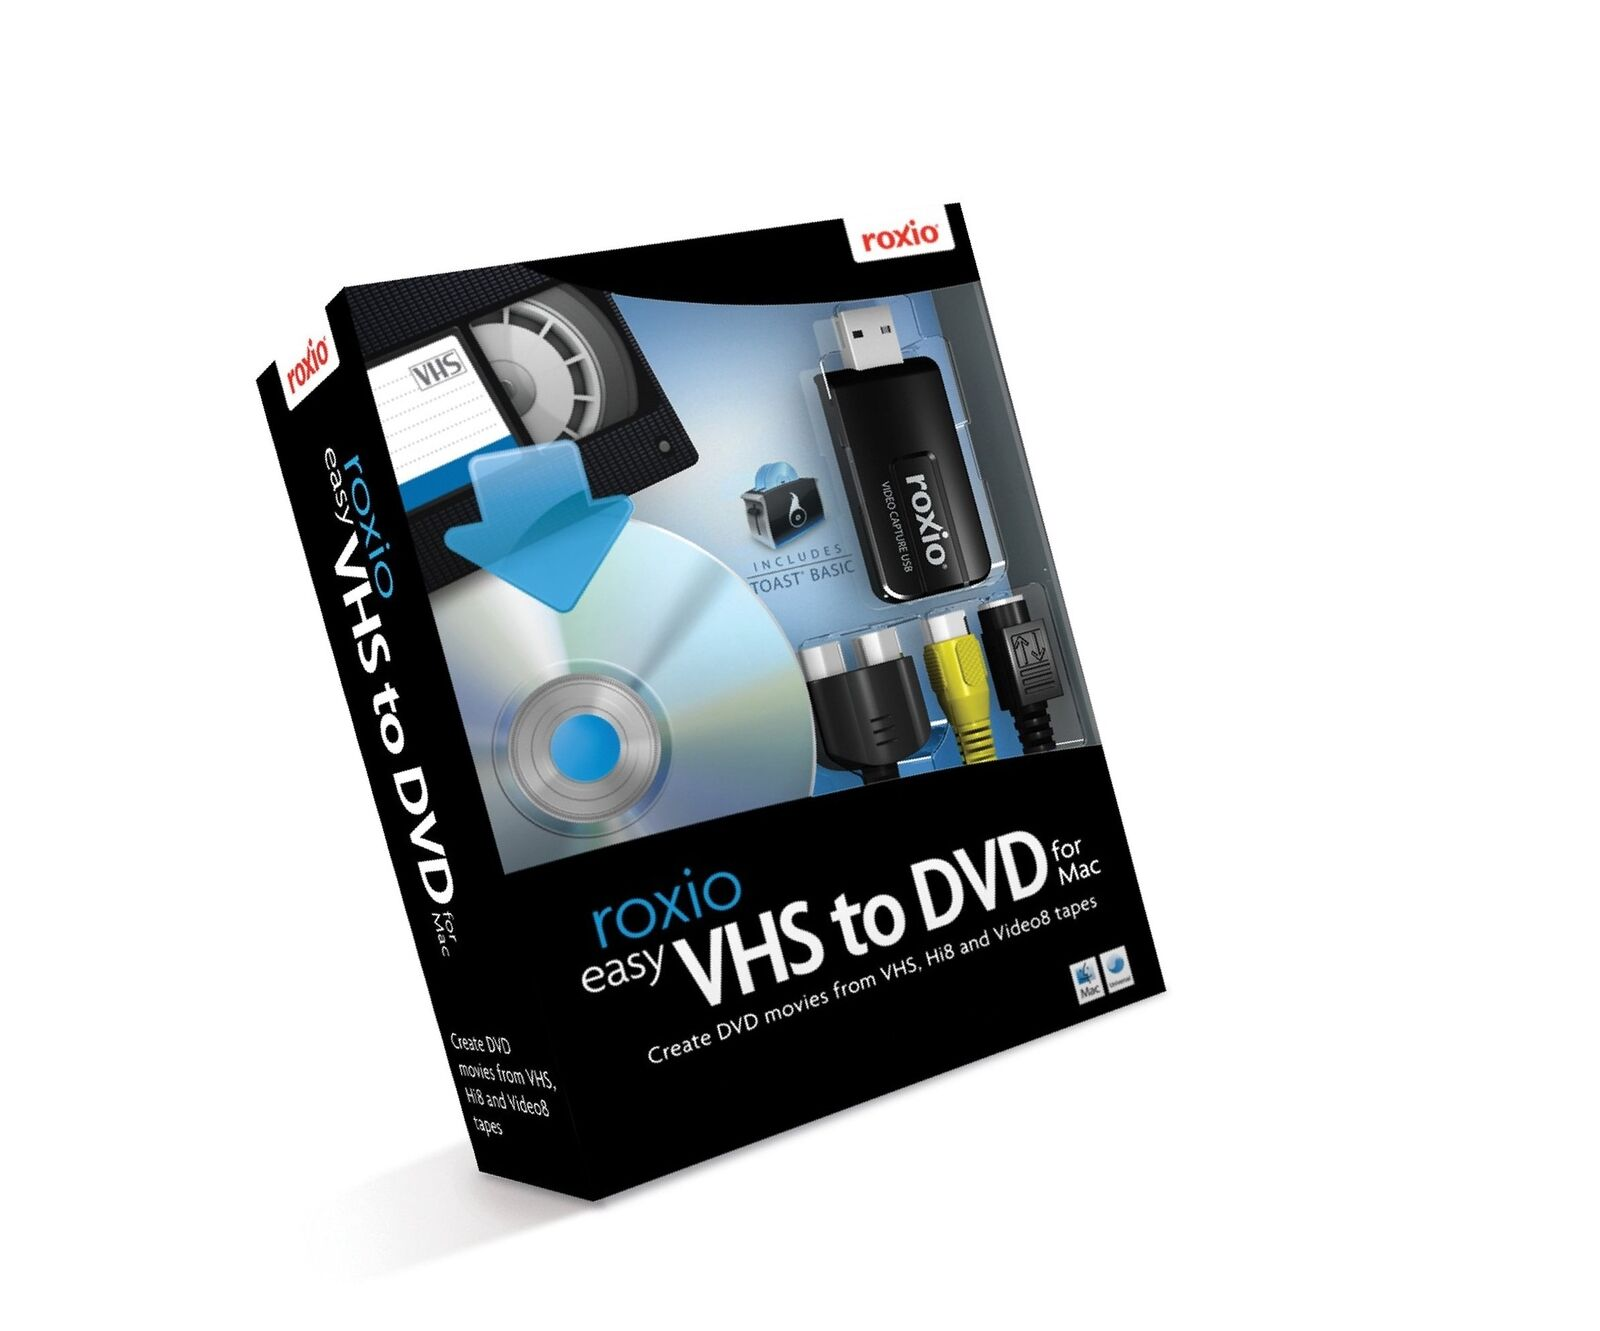 roxio easy vhs to dvd software download